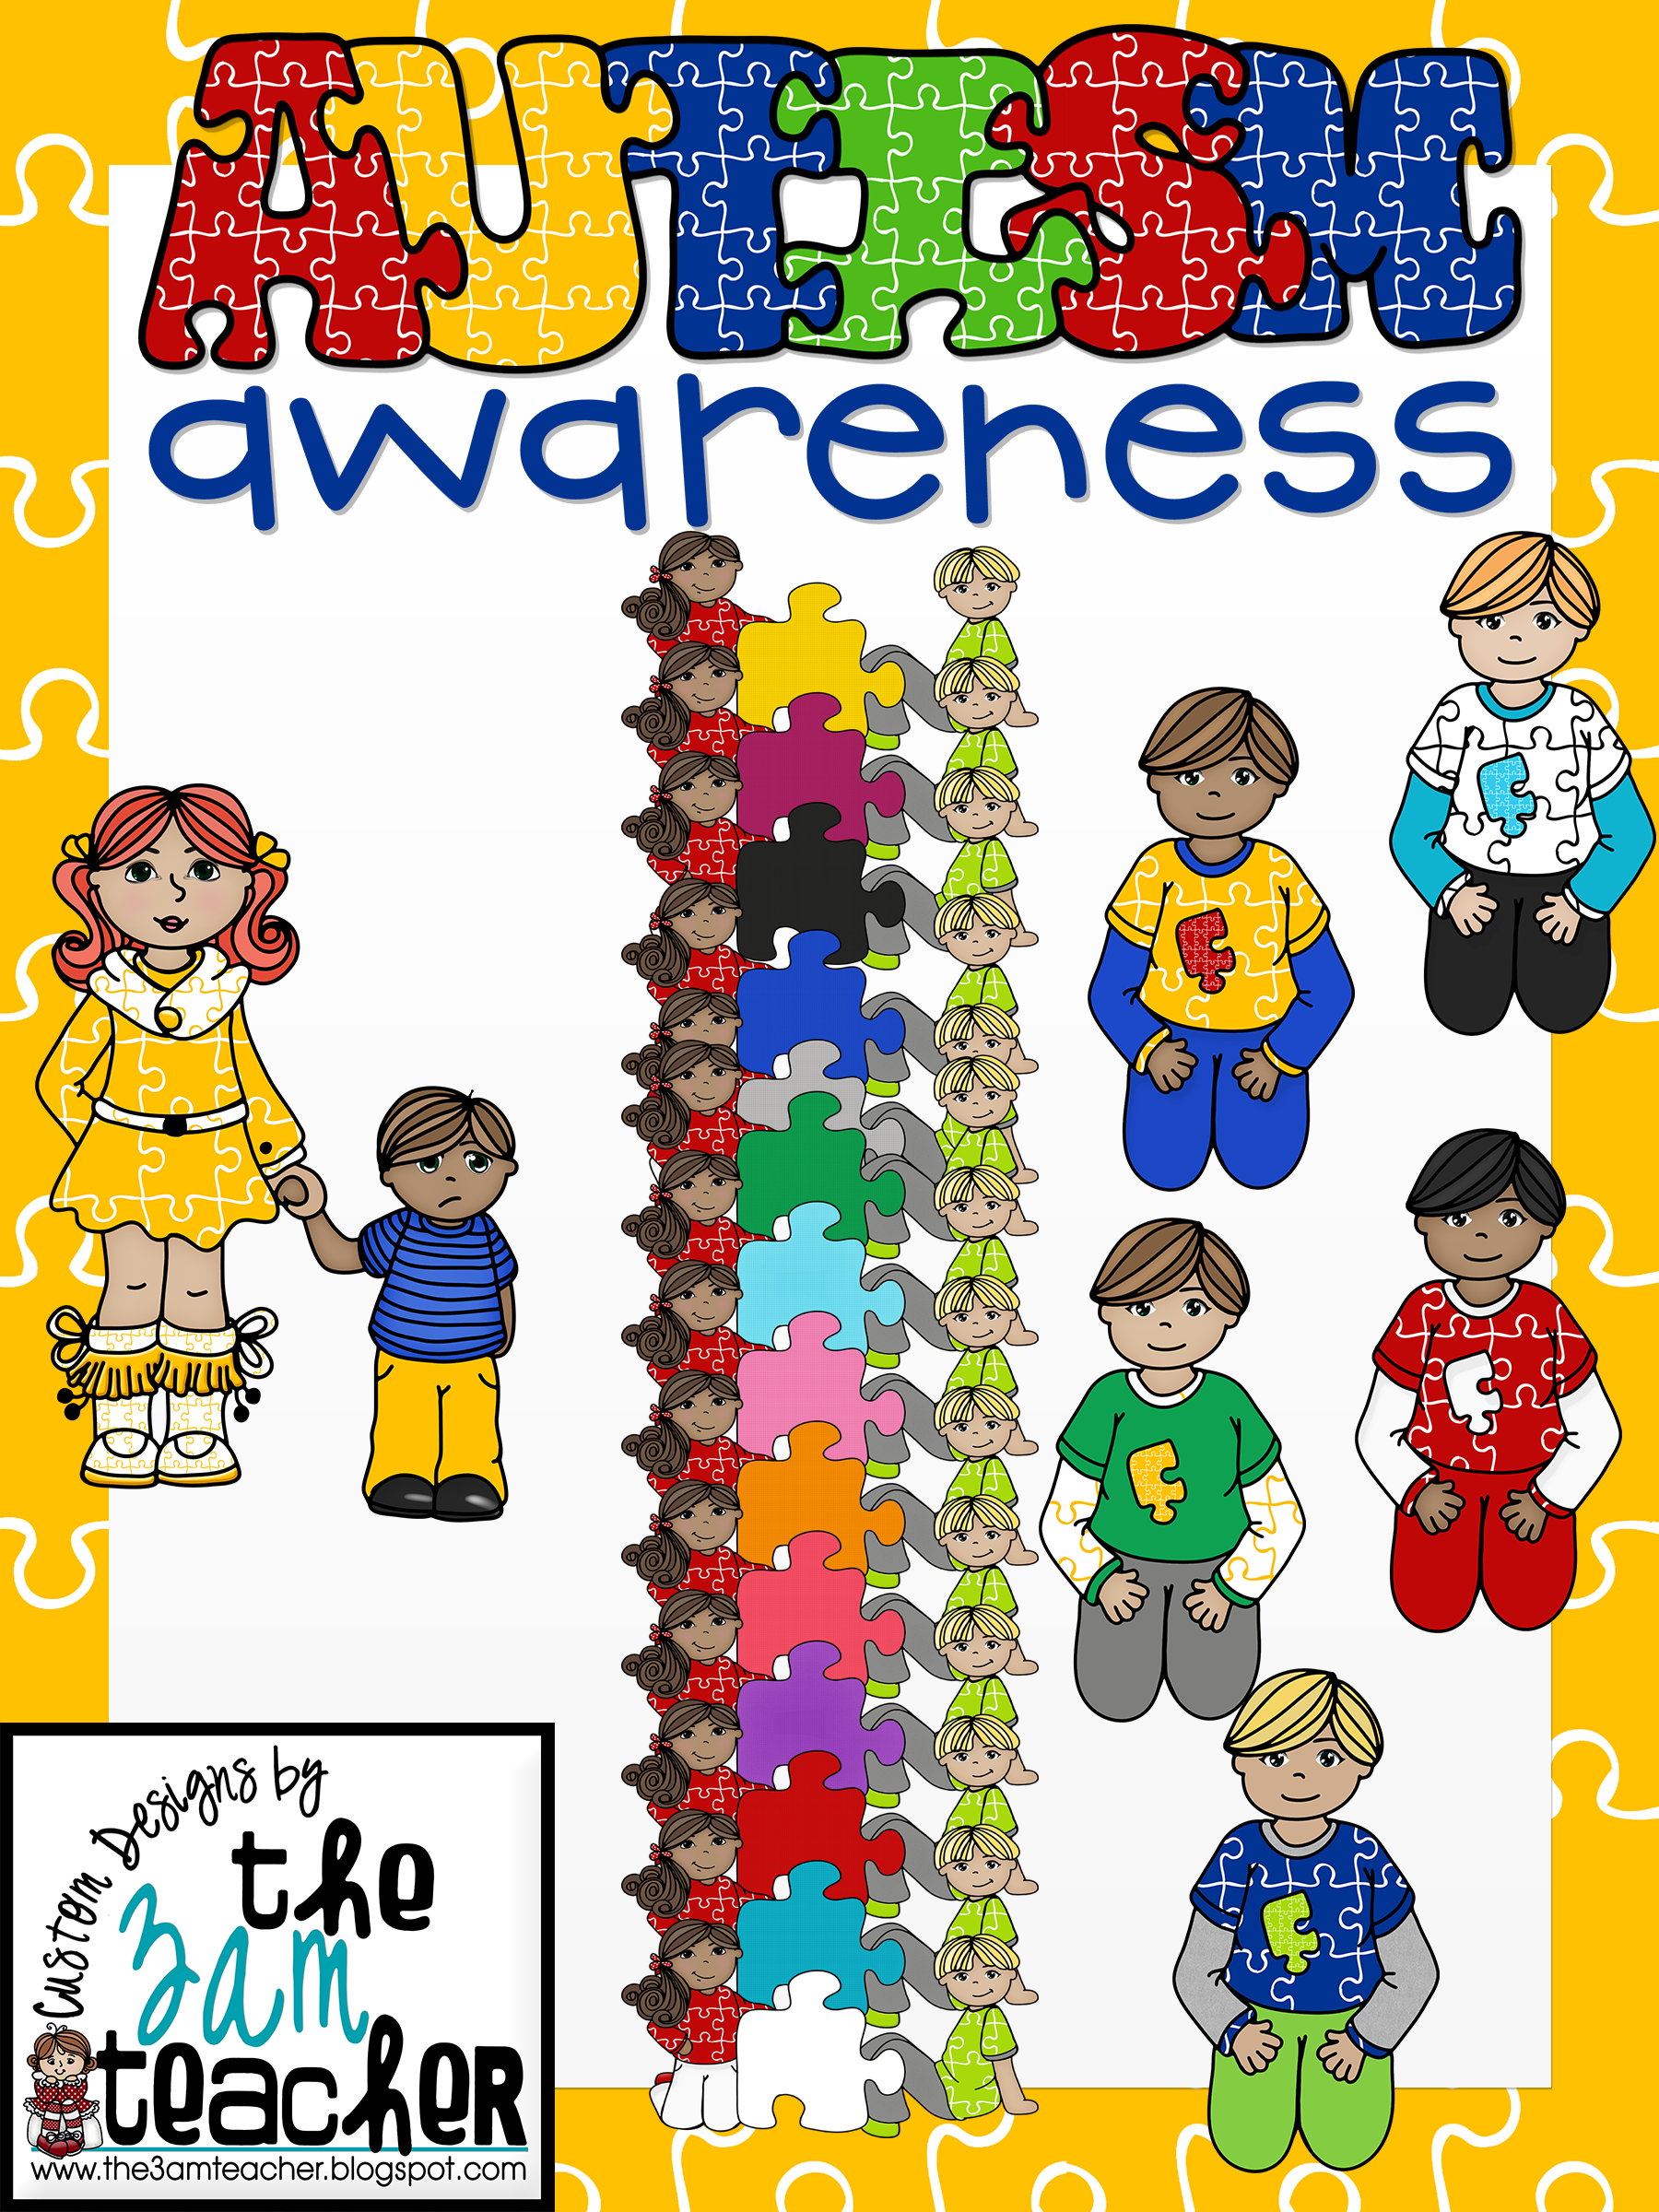 Autism clip art graphics clipart library stock Autism Awareness Clip Art/Graphics: Set 2 clipart library stock